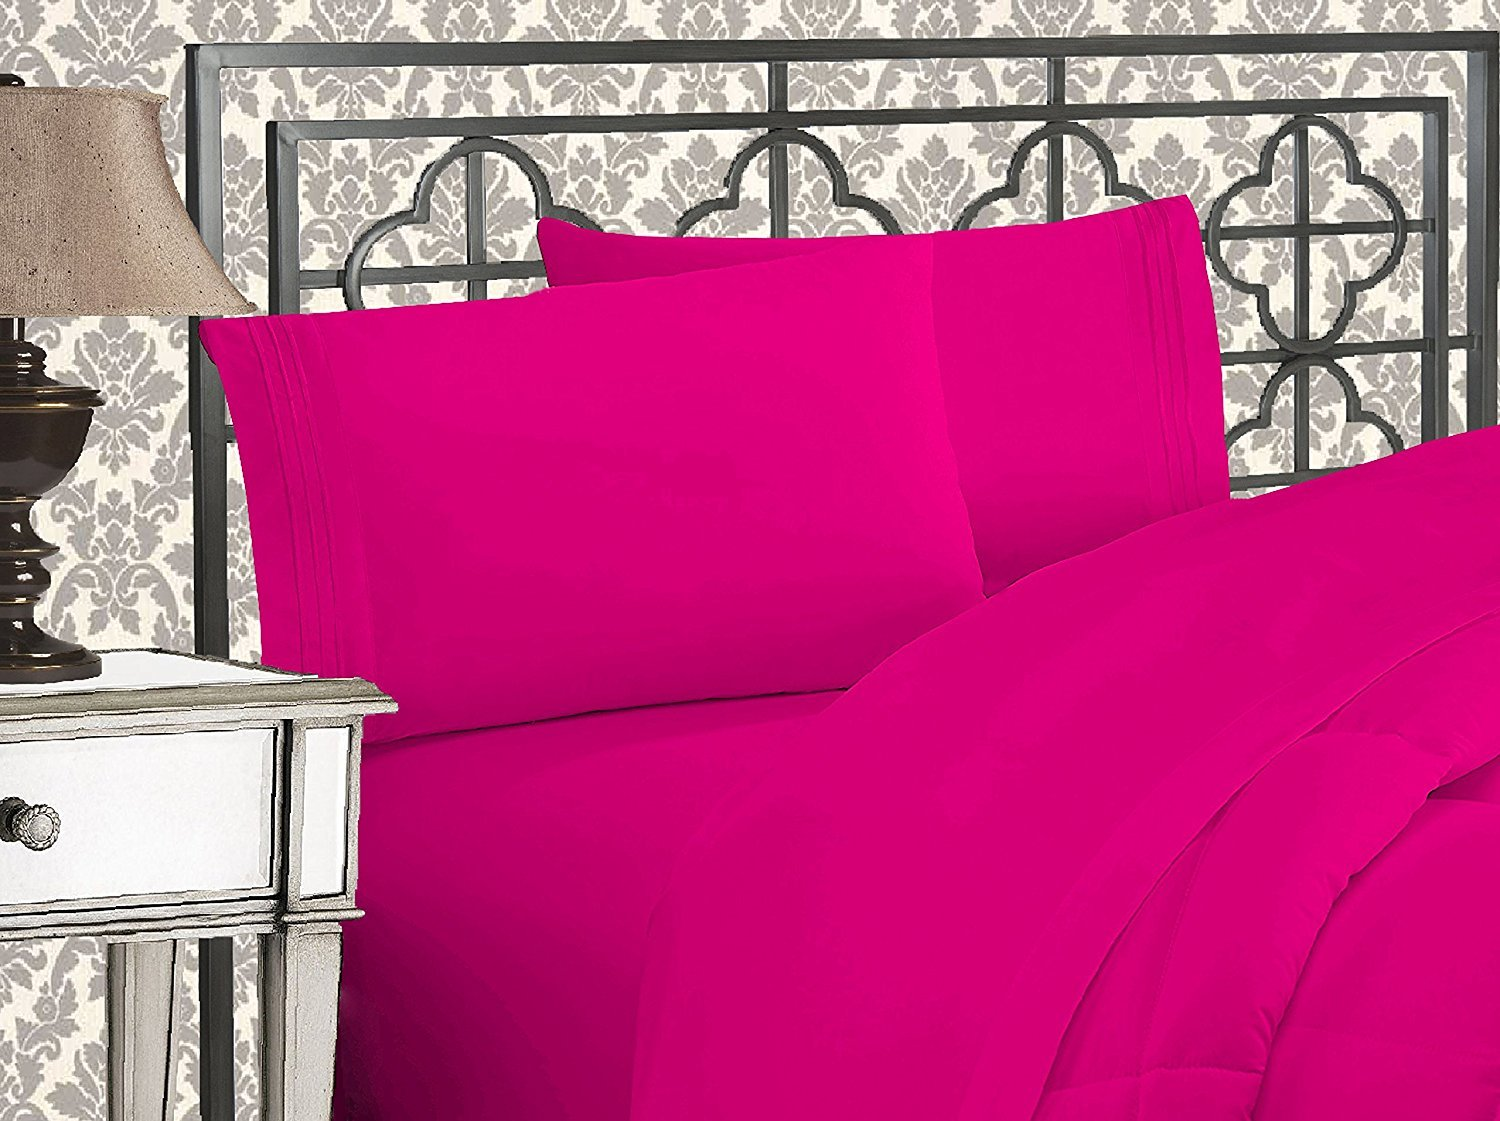 Elegant Comfort 1500 Thread Count Wrinkle & Fade Resistant Egyptian Quality Ultra Soft Luxurious 4-Piece Bed Sheet Set with Deep Pockets, Queen Pink